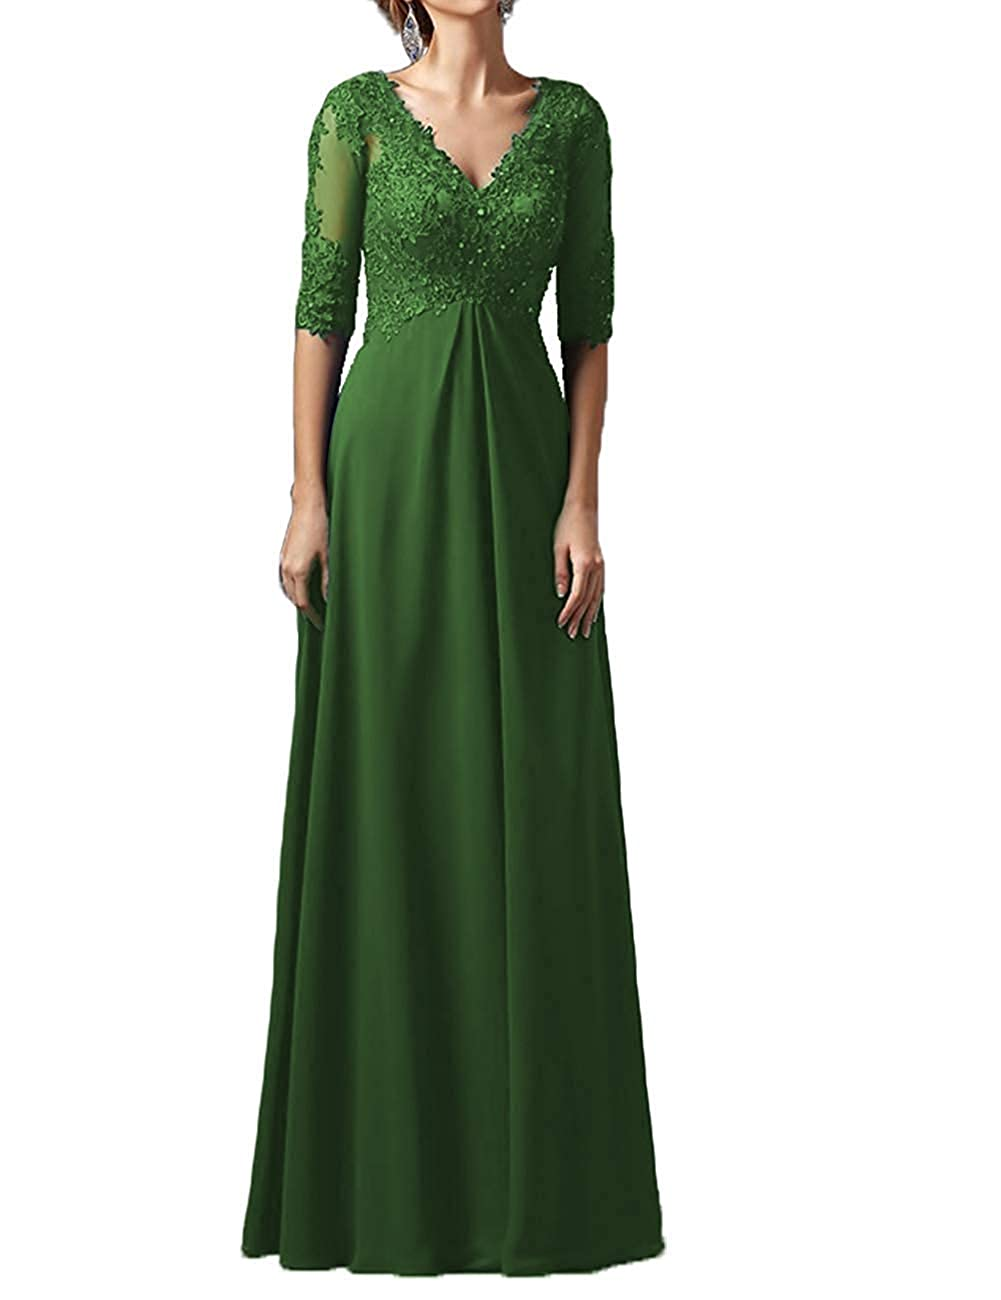 Dark Green Mother Dress Long Sleeves V Neck Plus Size Mother of The Bride Dress Formal Party Evening Gowns